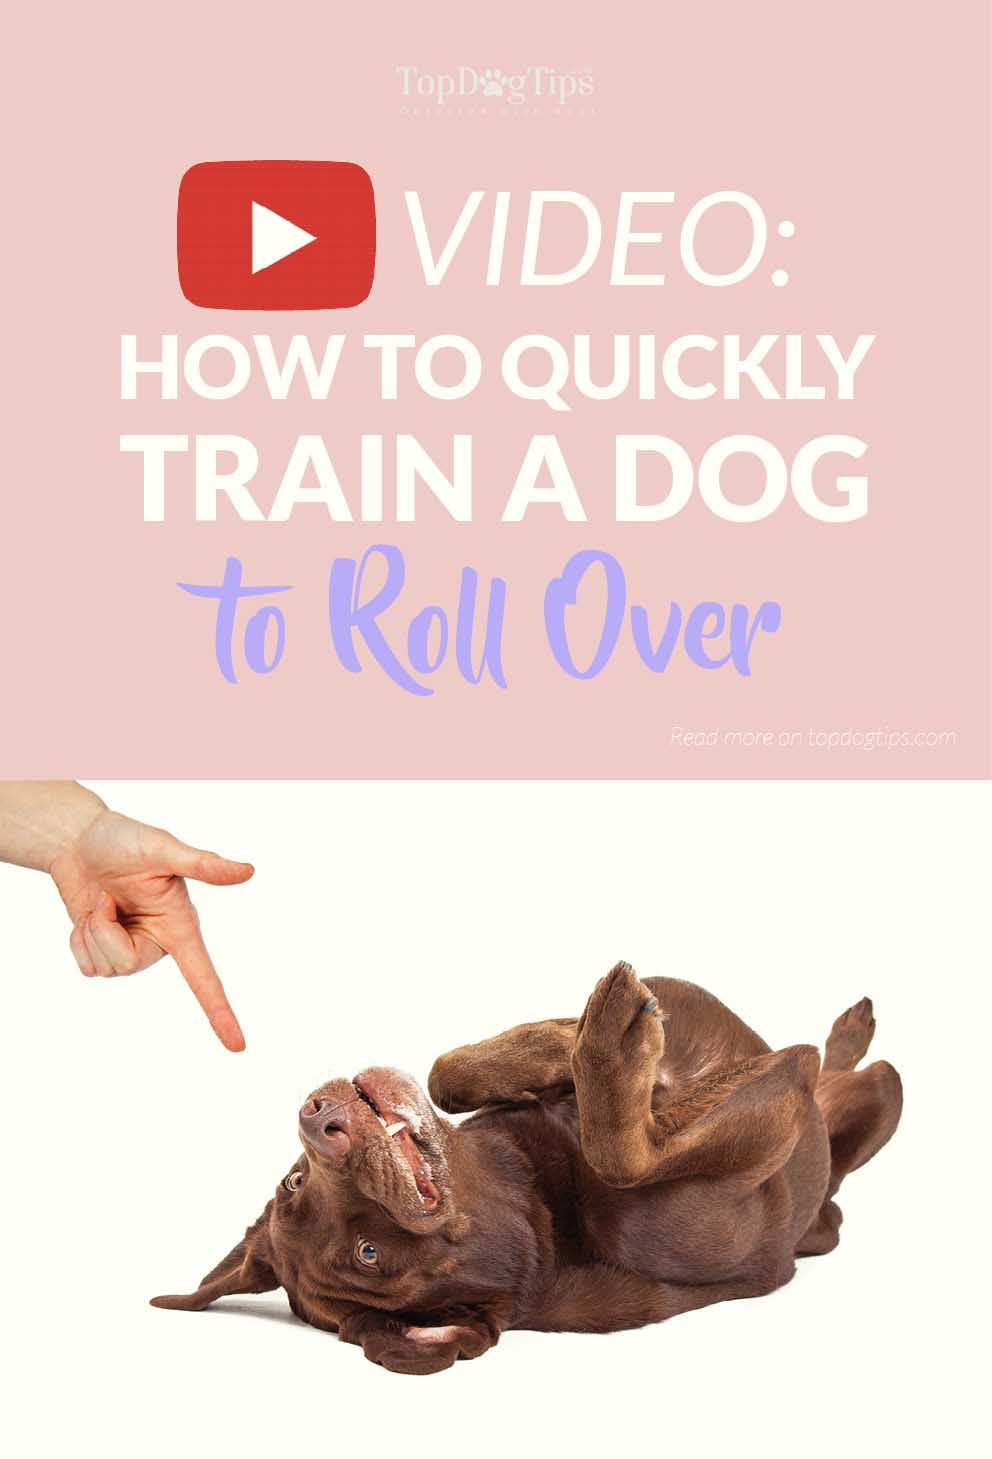 housebreak a dog How to potty train your siberian husky in 5 ½ days how to potty train your siberian husky in 5 ½ days potty training your dog can be a frustrating process if you don't have a firm plan in place.